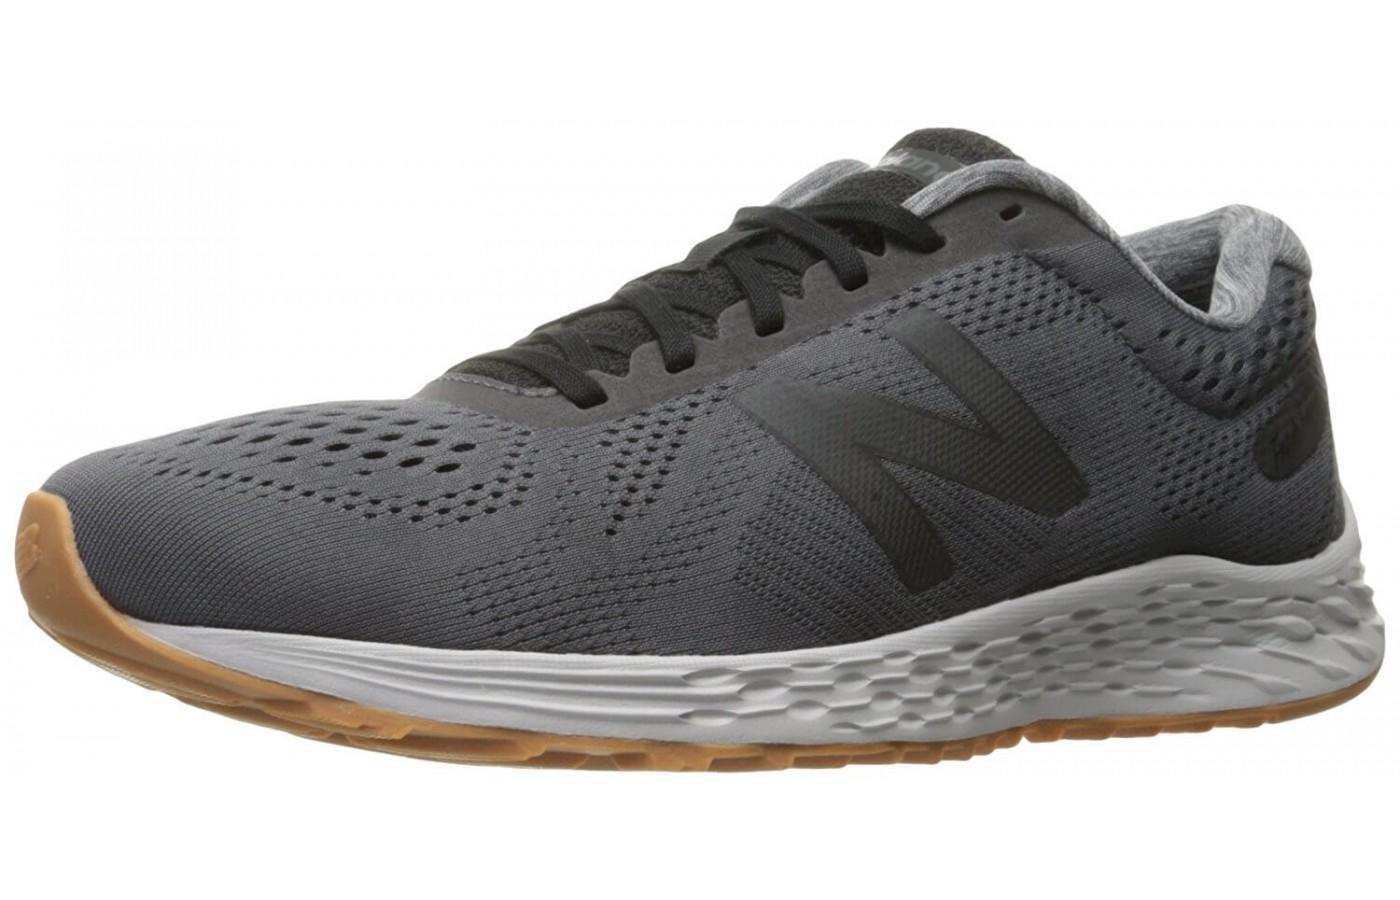 The New Balance Fresh Foam Arishi is a comfortable ride for everyday wear.